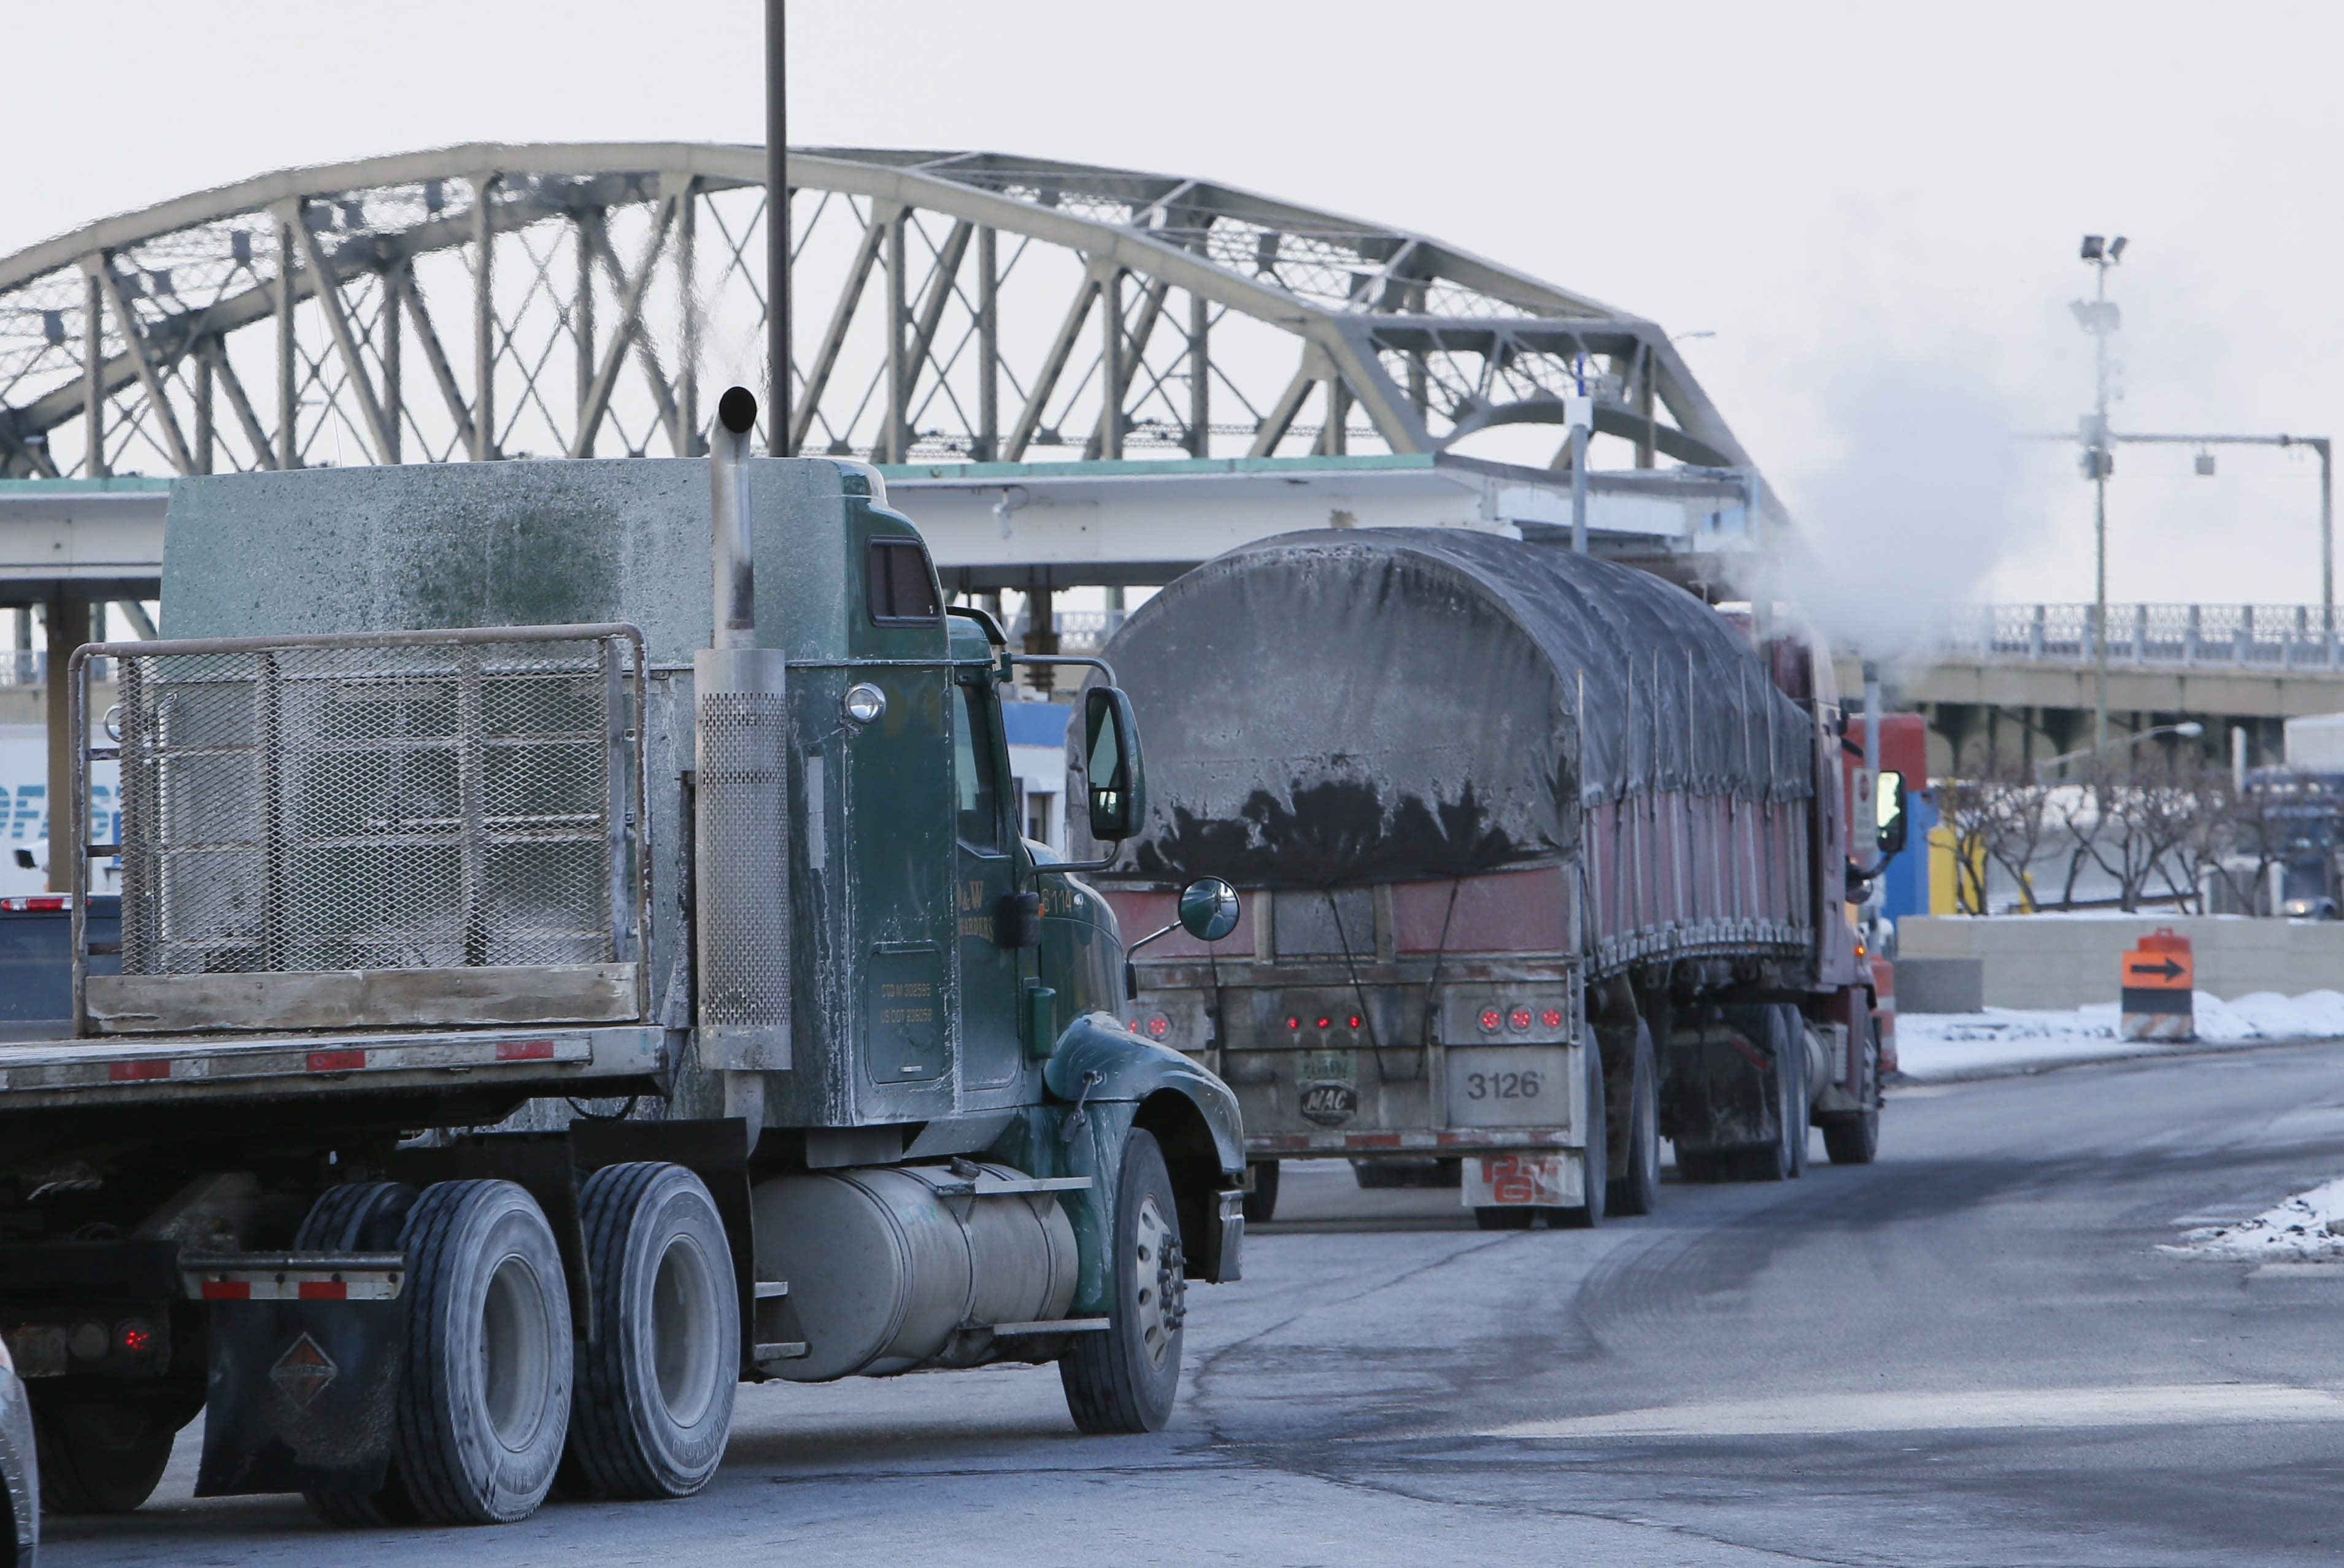 The effort to ban trucks from the Peace Bridge was short-lived, according to emails among federal officials.